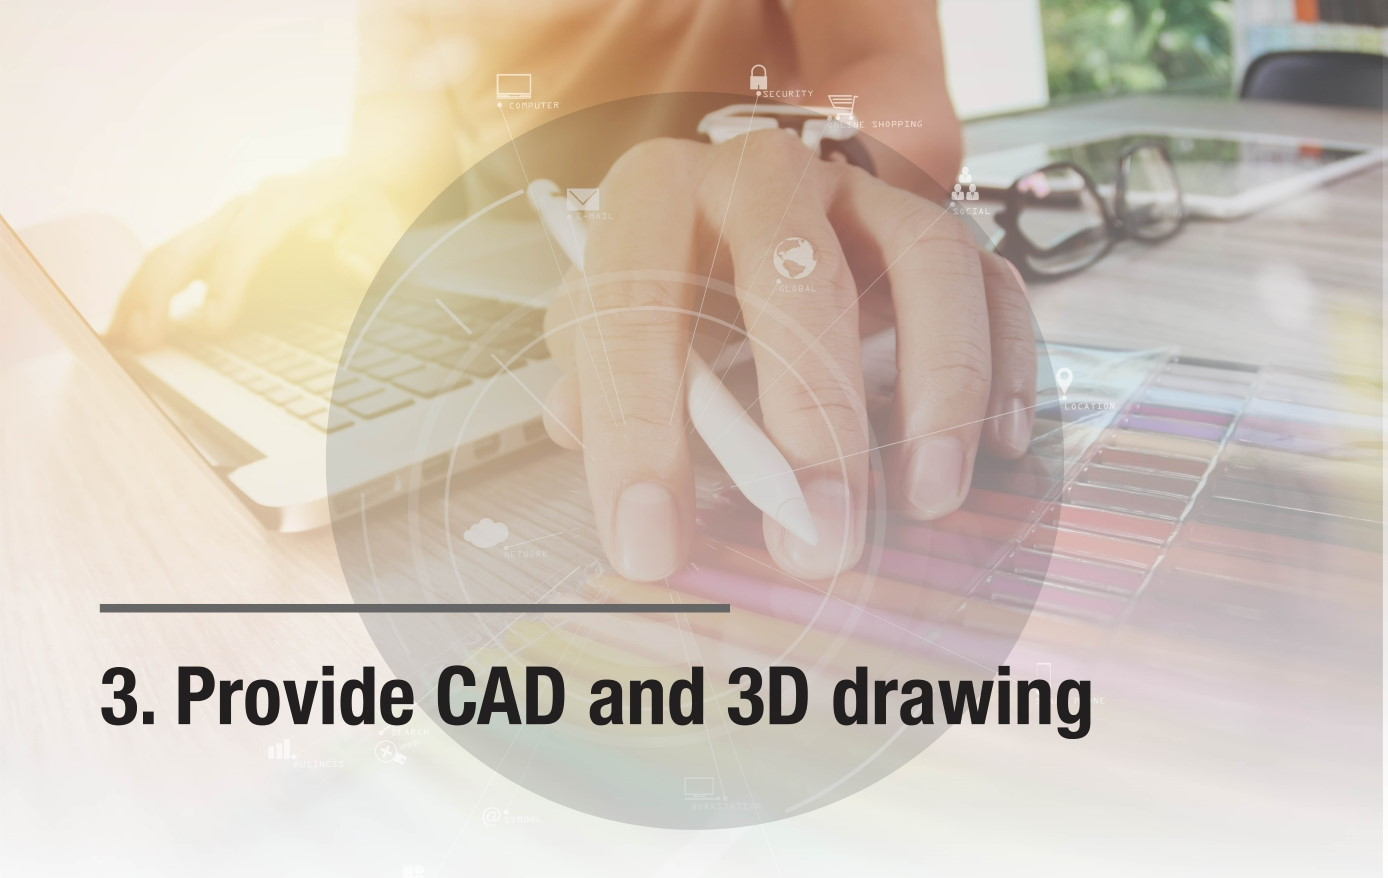 Provide CAD and 3D drawing